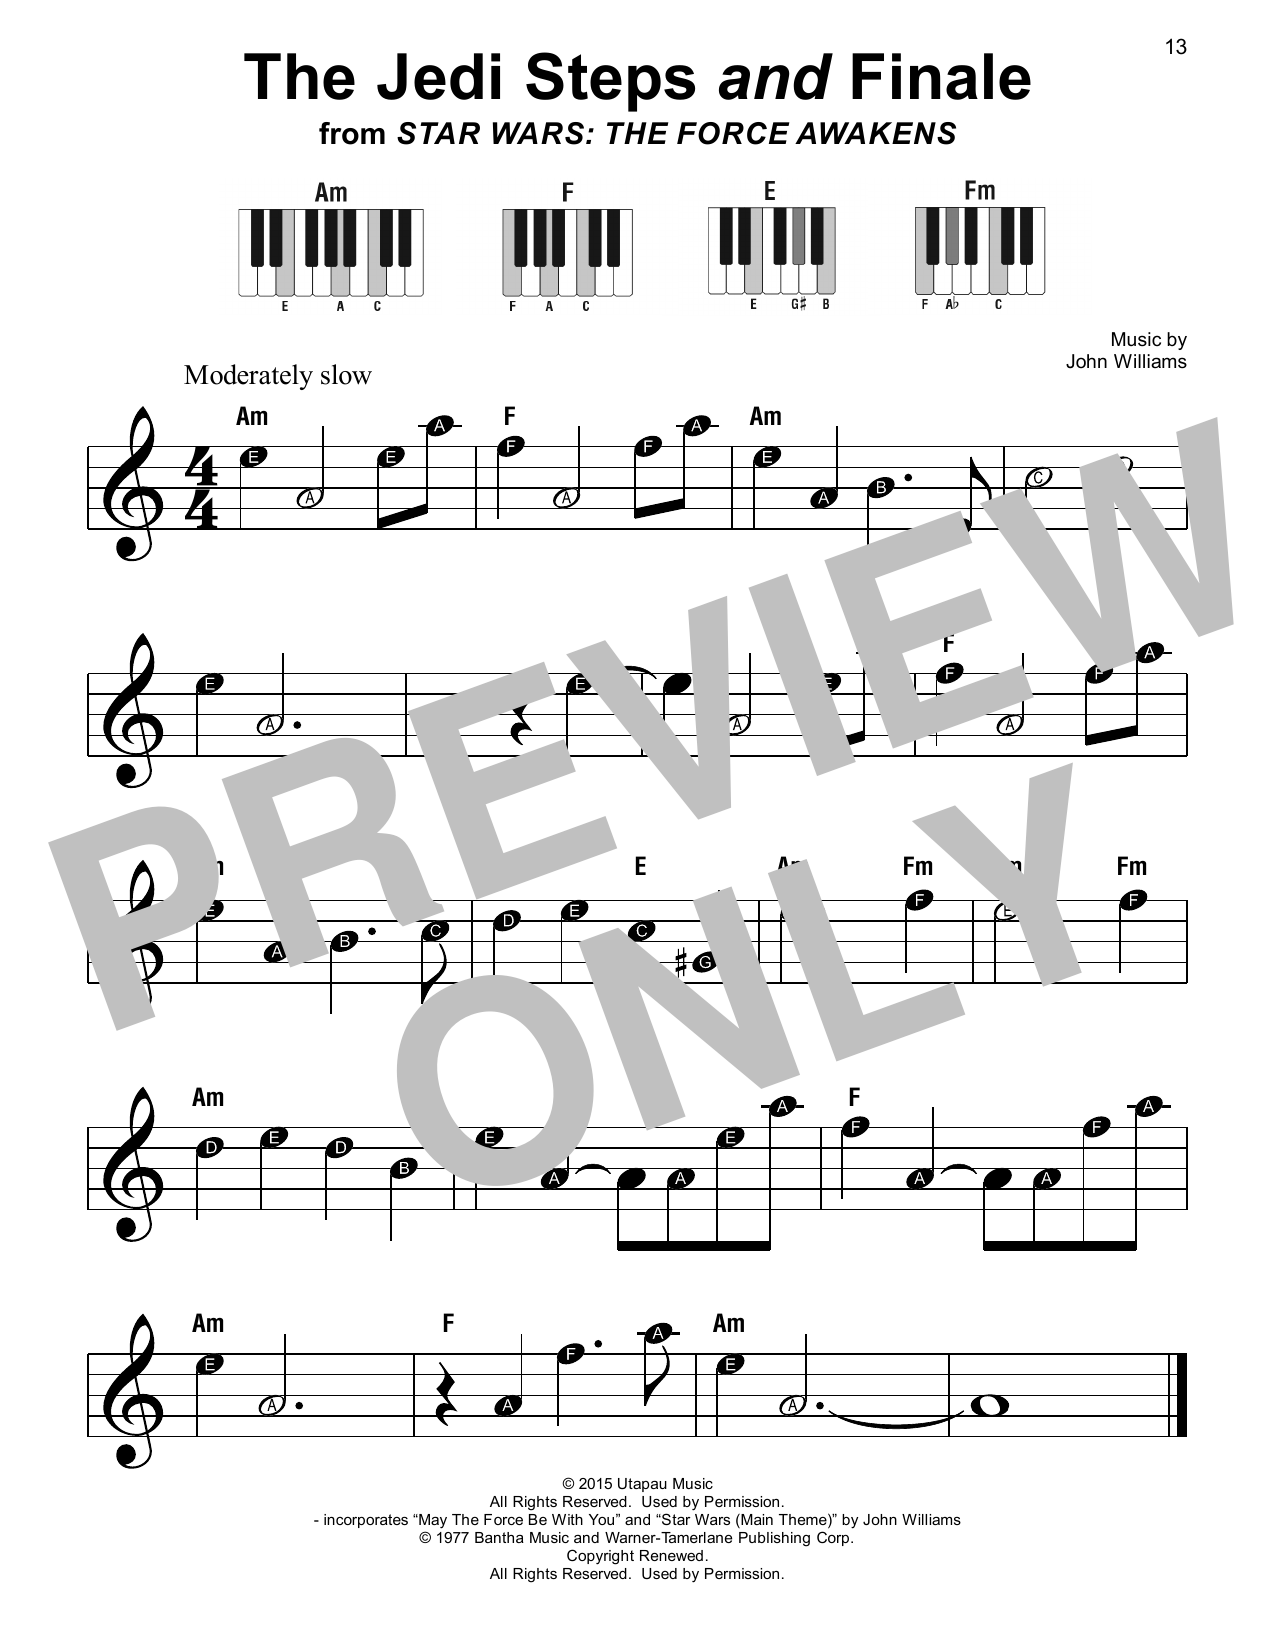 John Williams The Jedi Steps And Finale (from Star Wars: The Force Awakens) sheet music notes printable PDF score